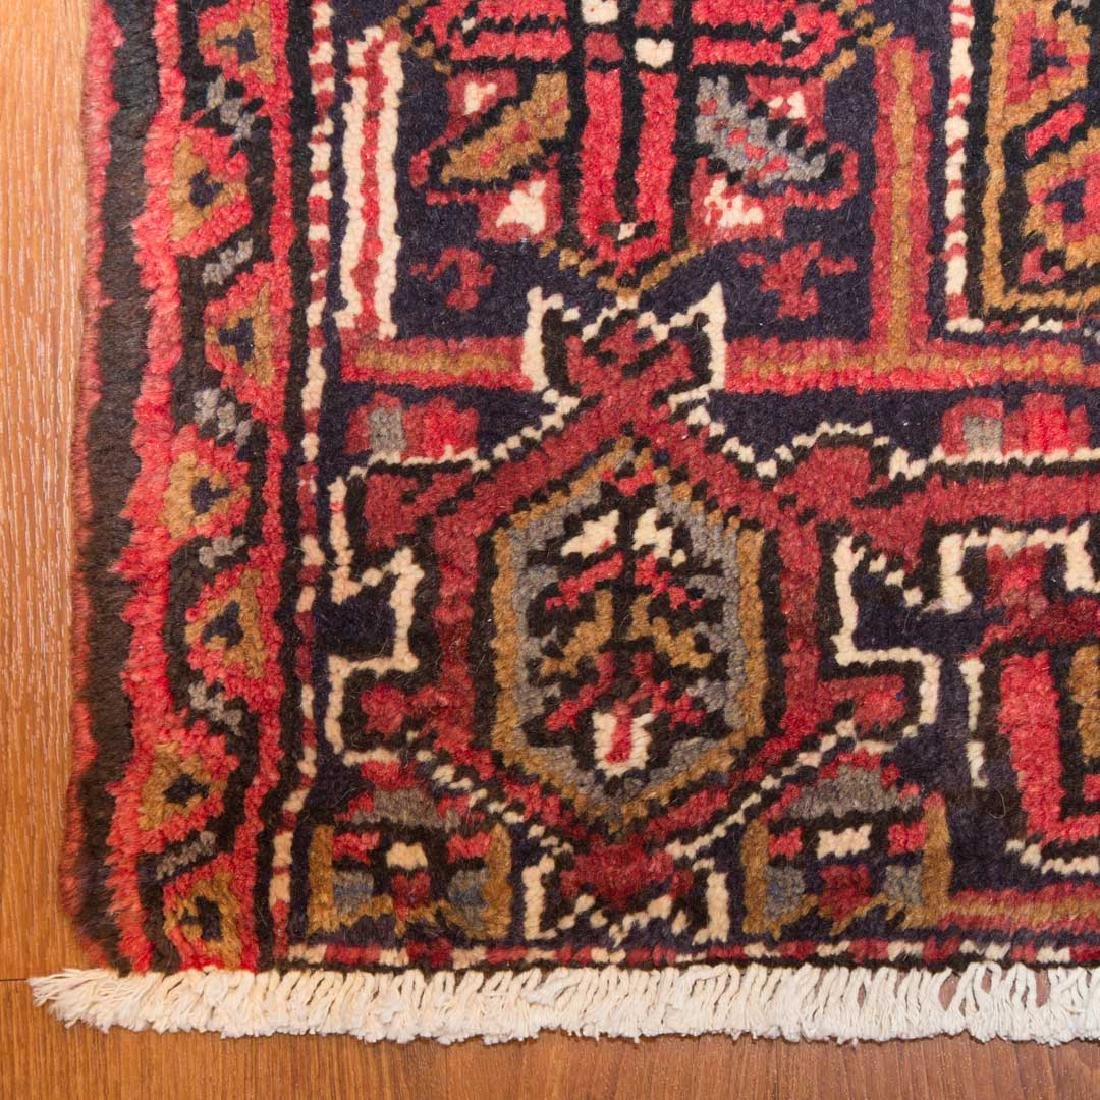 Persian Herez rug, approx. 7.4 x 9.9 - 2